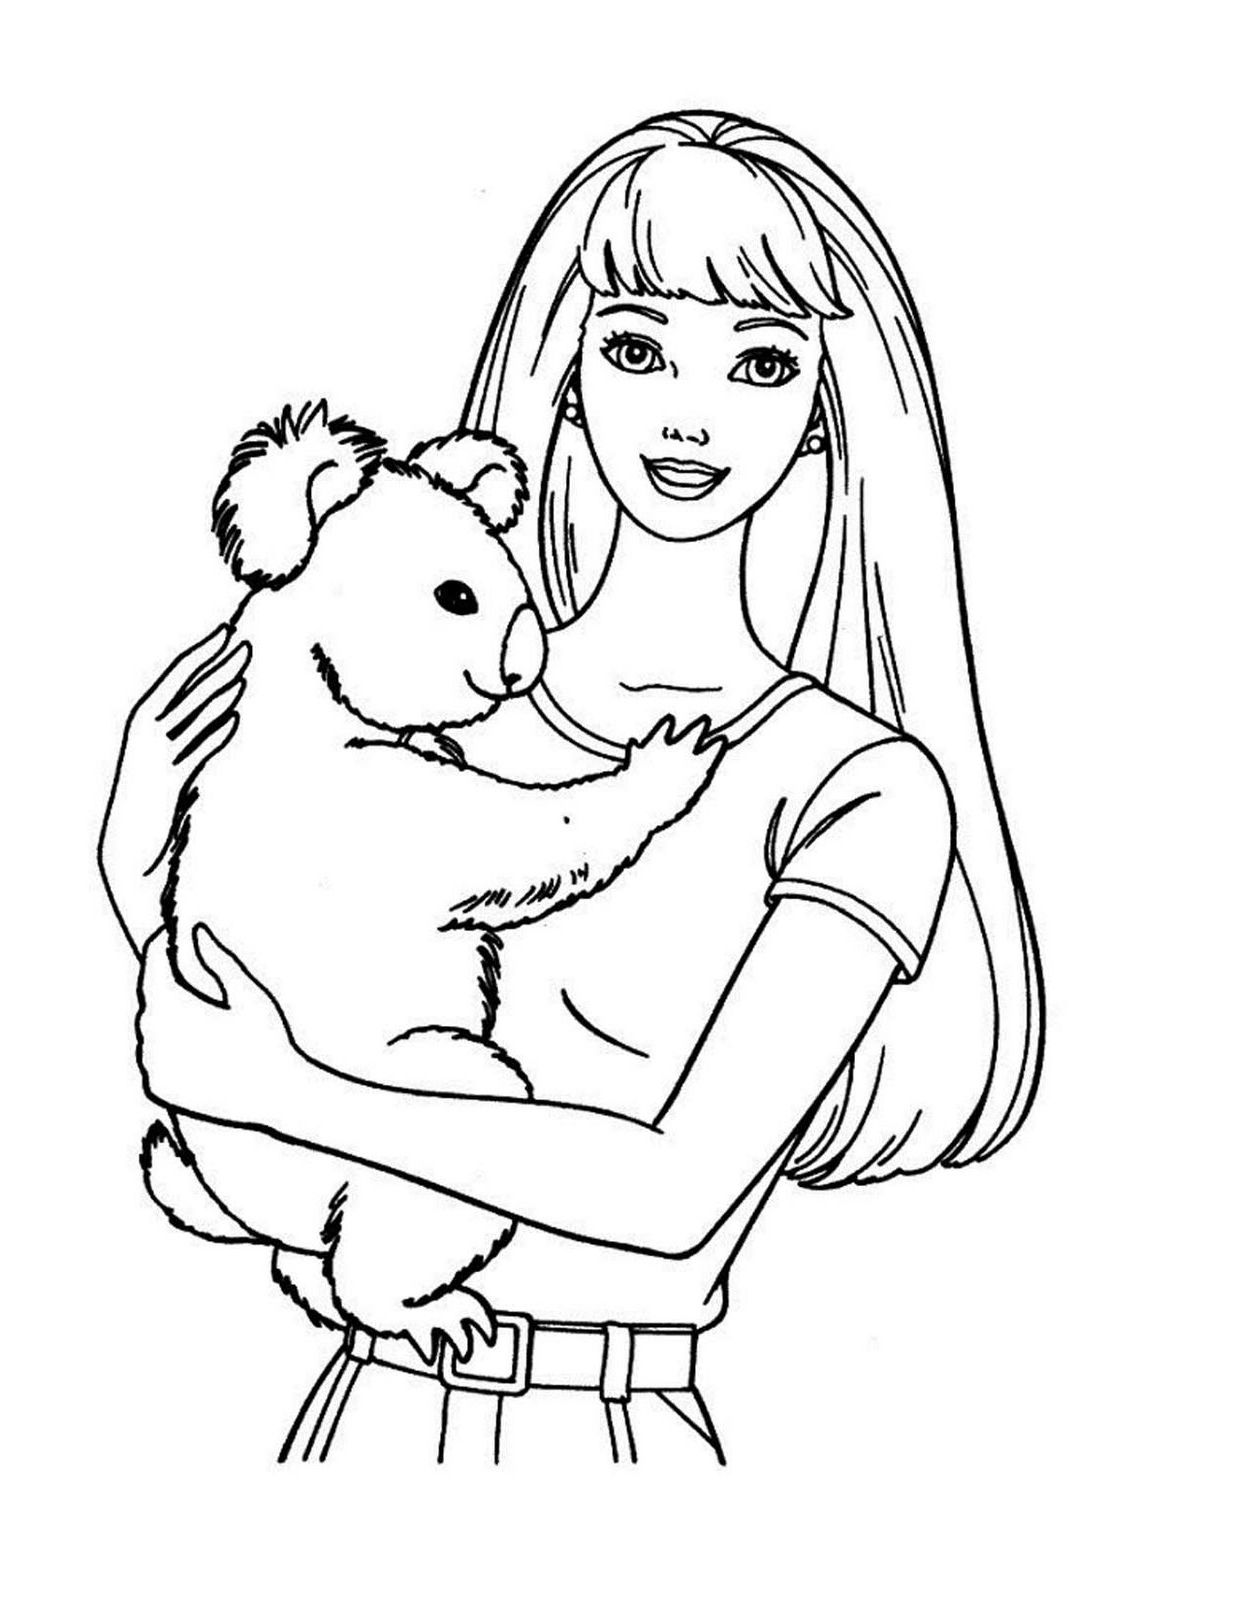 Free printable coloring pages barbie princess - Barbie Coloring Pages Printable Sheet Coloring Pages To Print